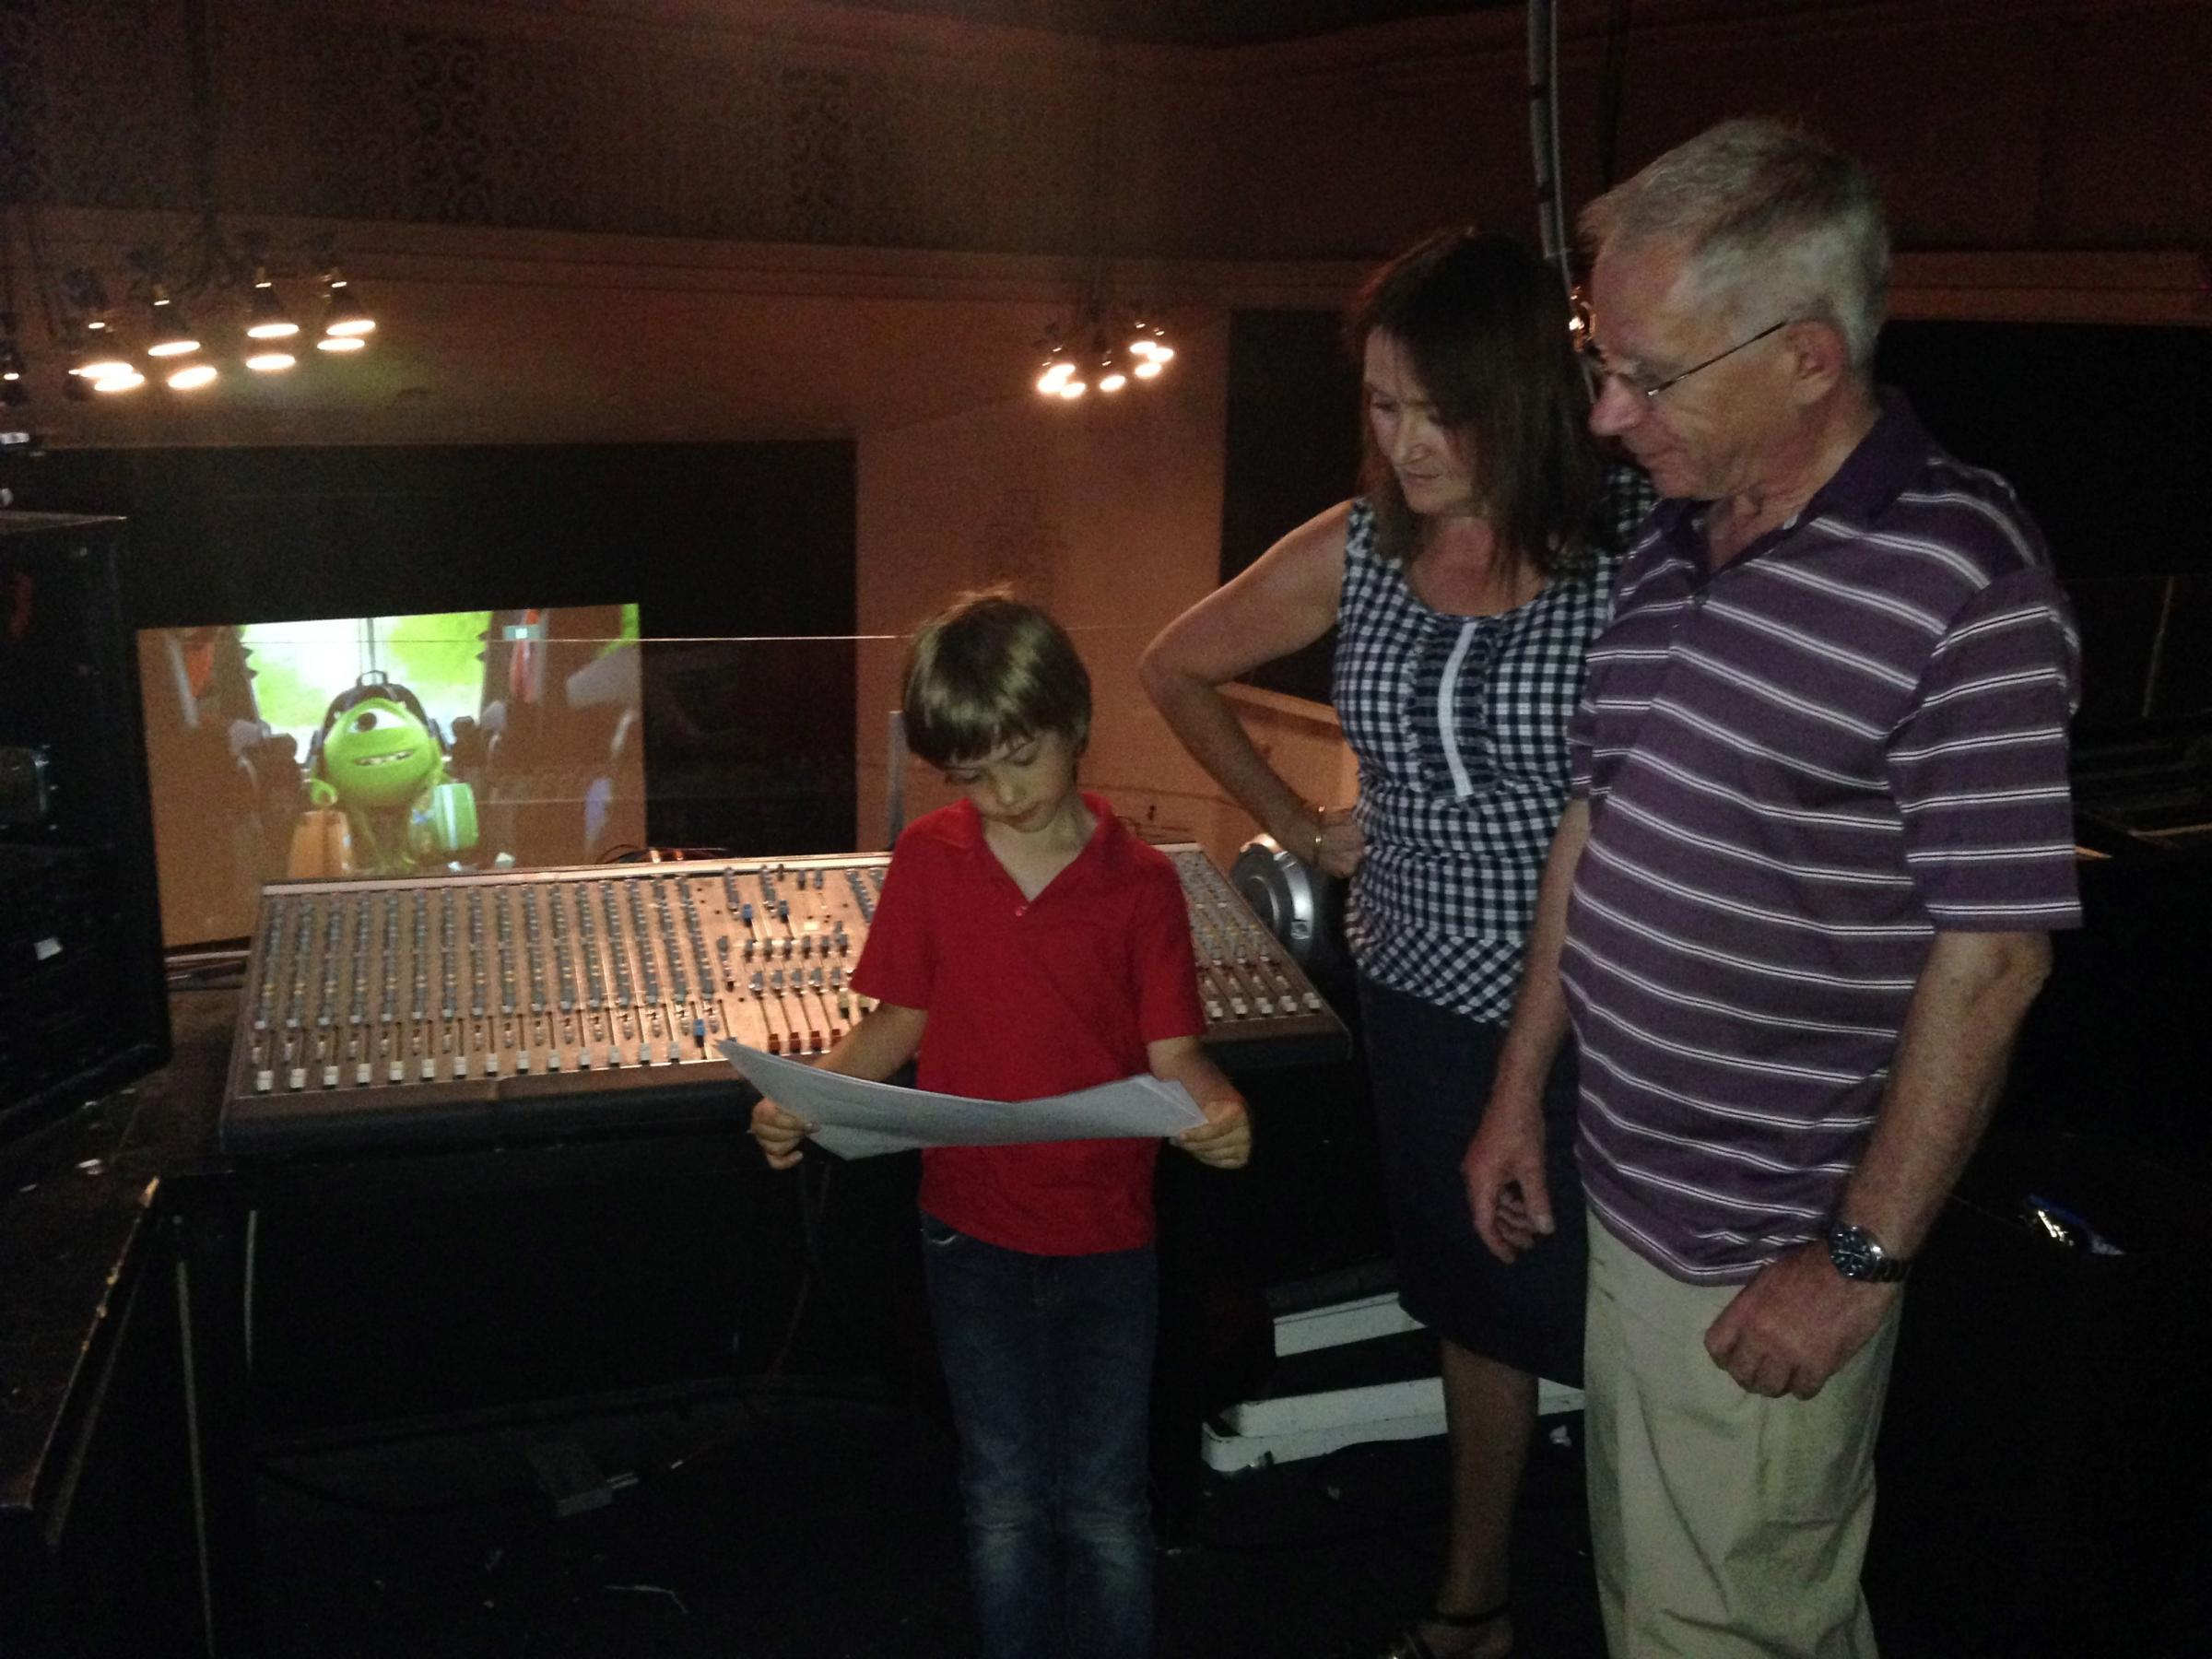 BARRY LISTING: General manager Kate Long and trustee Richard Thomas show the Memo children's holiday film programme to young visitor Morgan Norfolk from Cheltenham